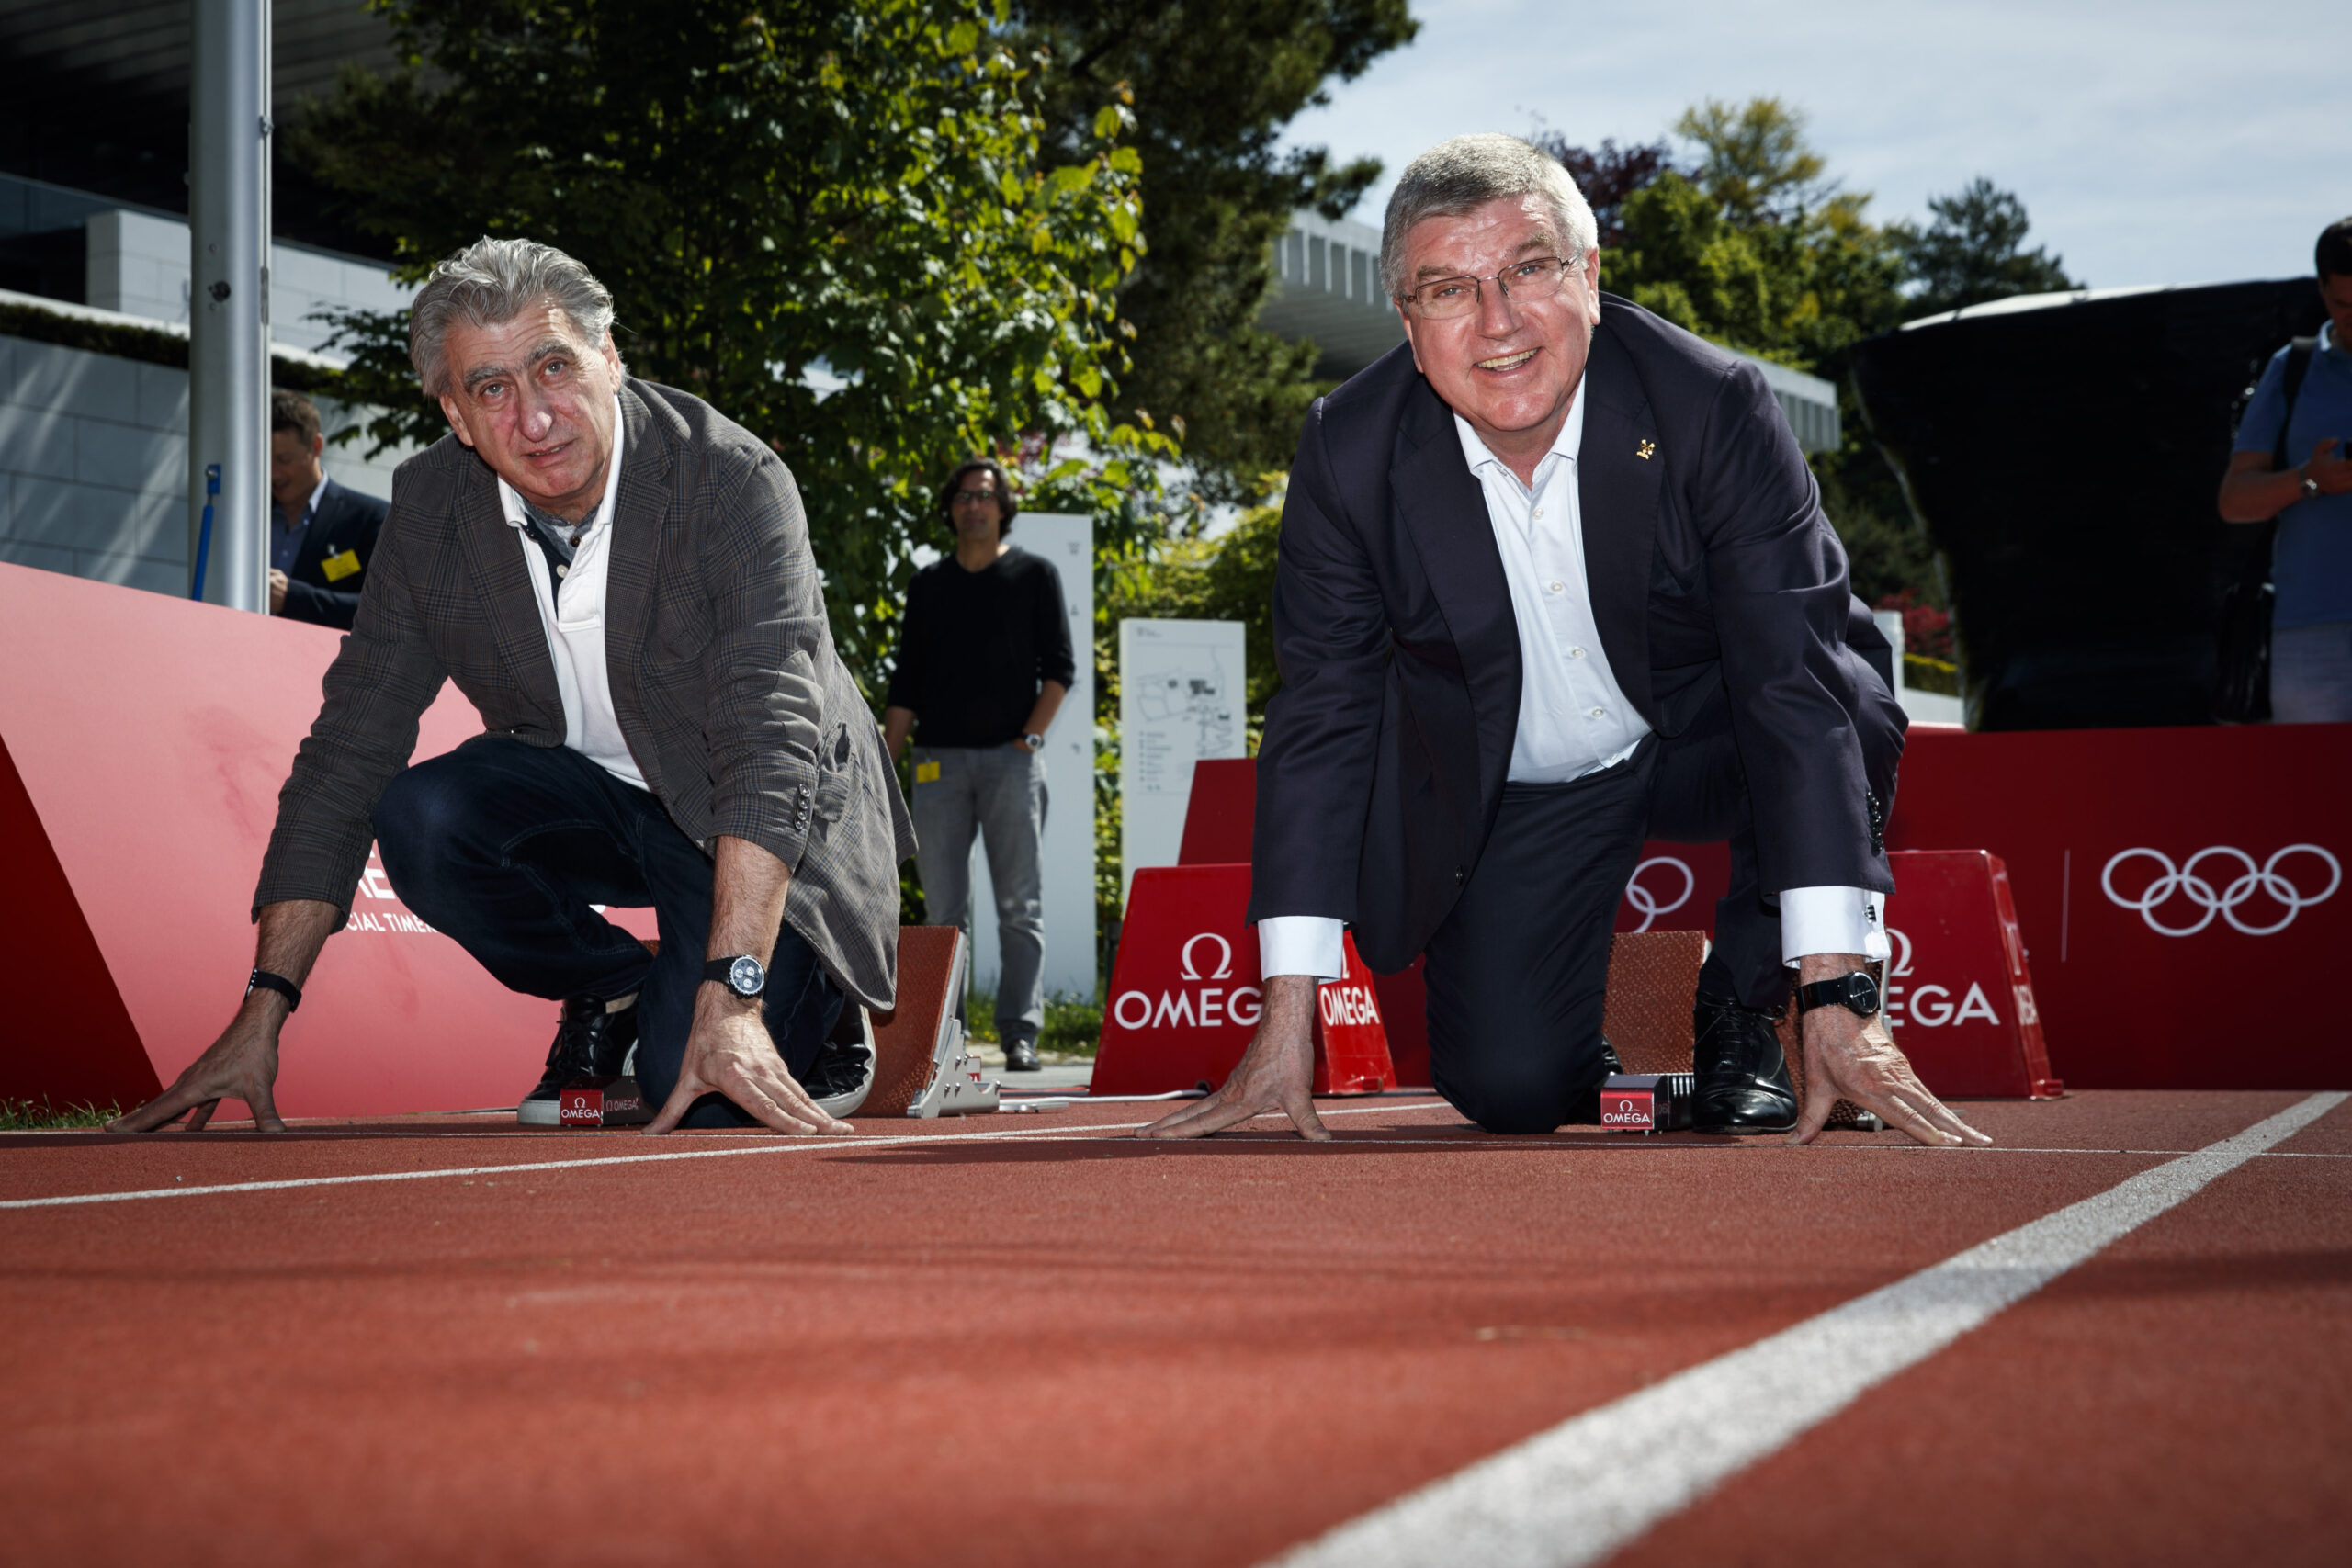 Nick Hayek, CEO of Swatch Group and IOC President Thomas Bach. Ready? 3-2-1-Go!